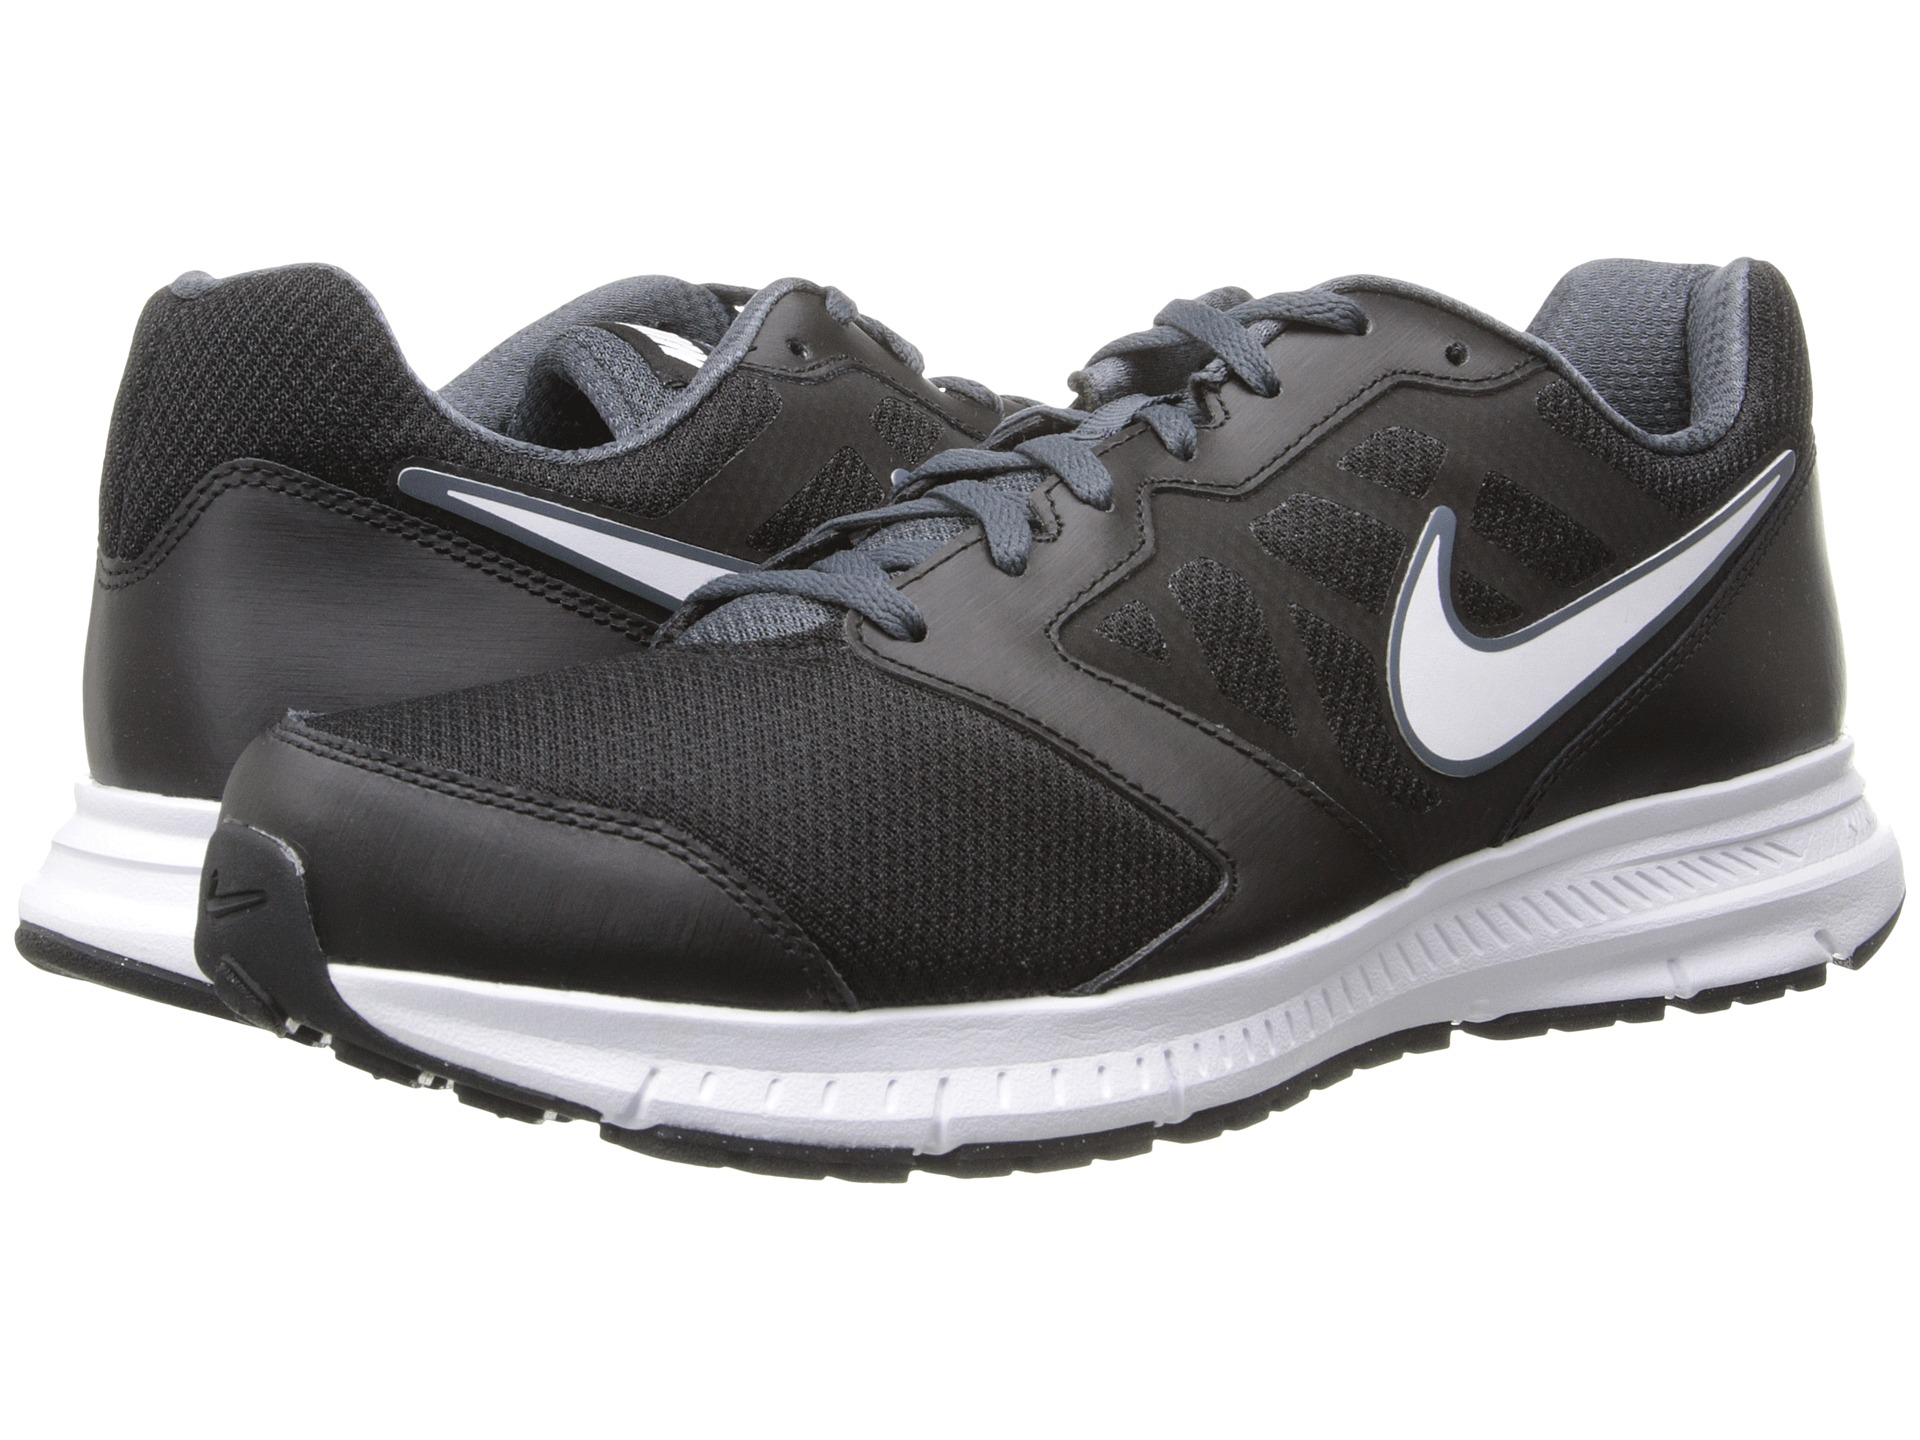 Nike Downshifter 6 - Zappos.com Free Shipping BOTH Ways